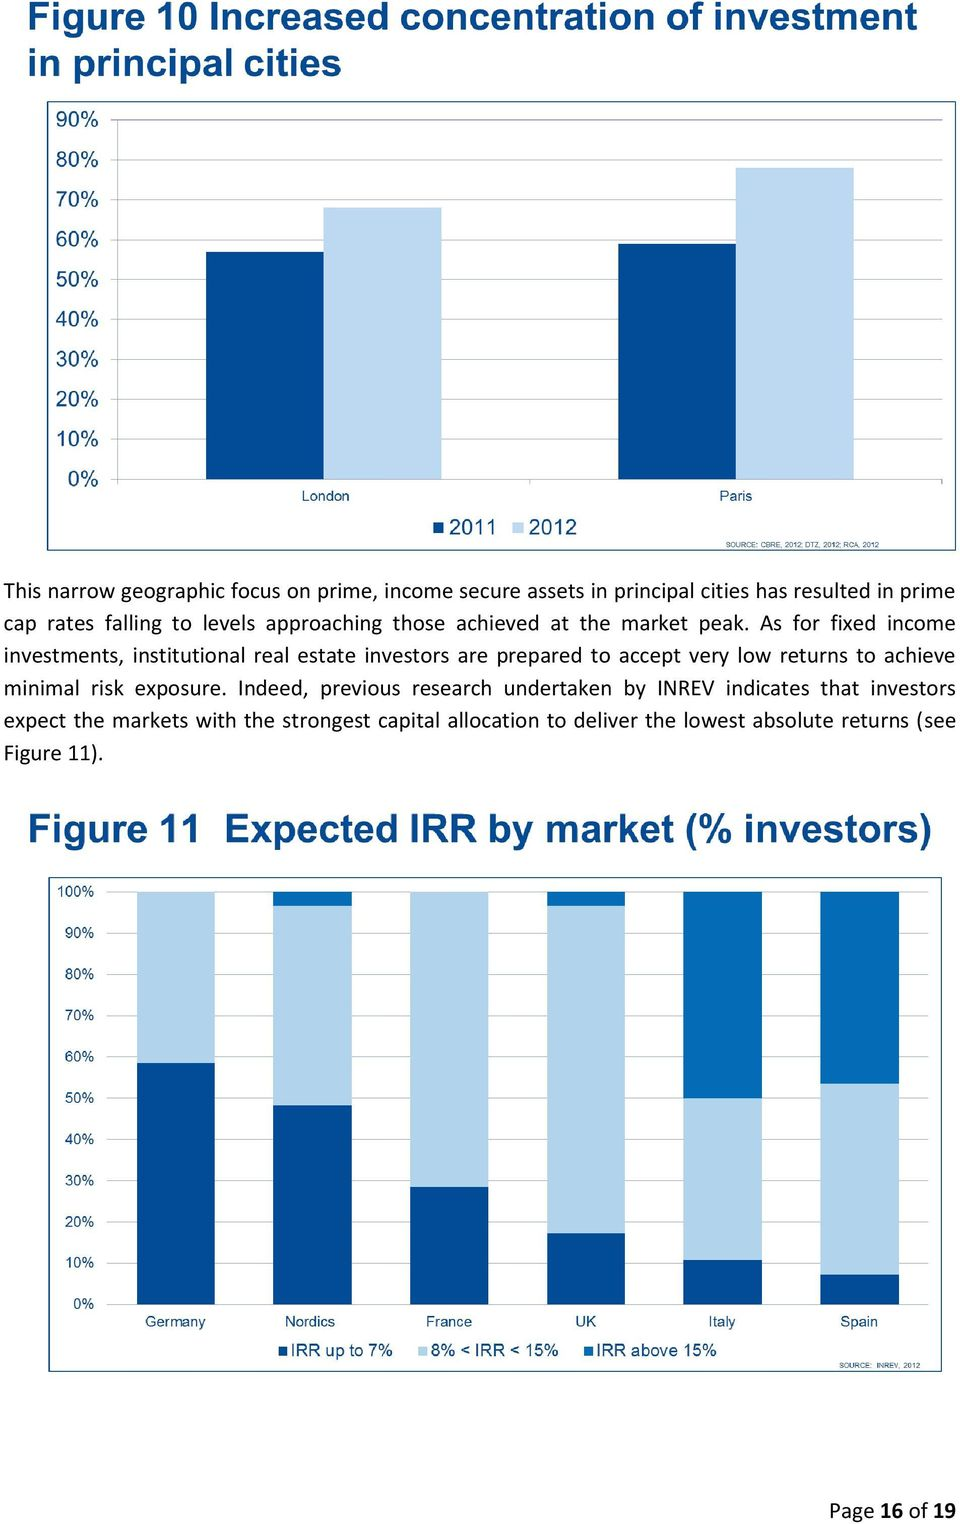 As for fixed income investments, institutional real estate investors are prepared to accept very low returns to achieve minimal